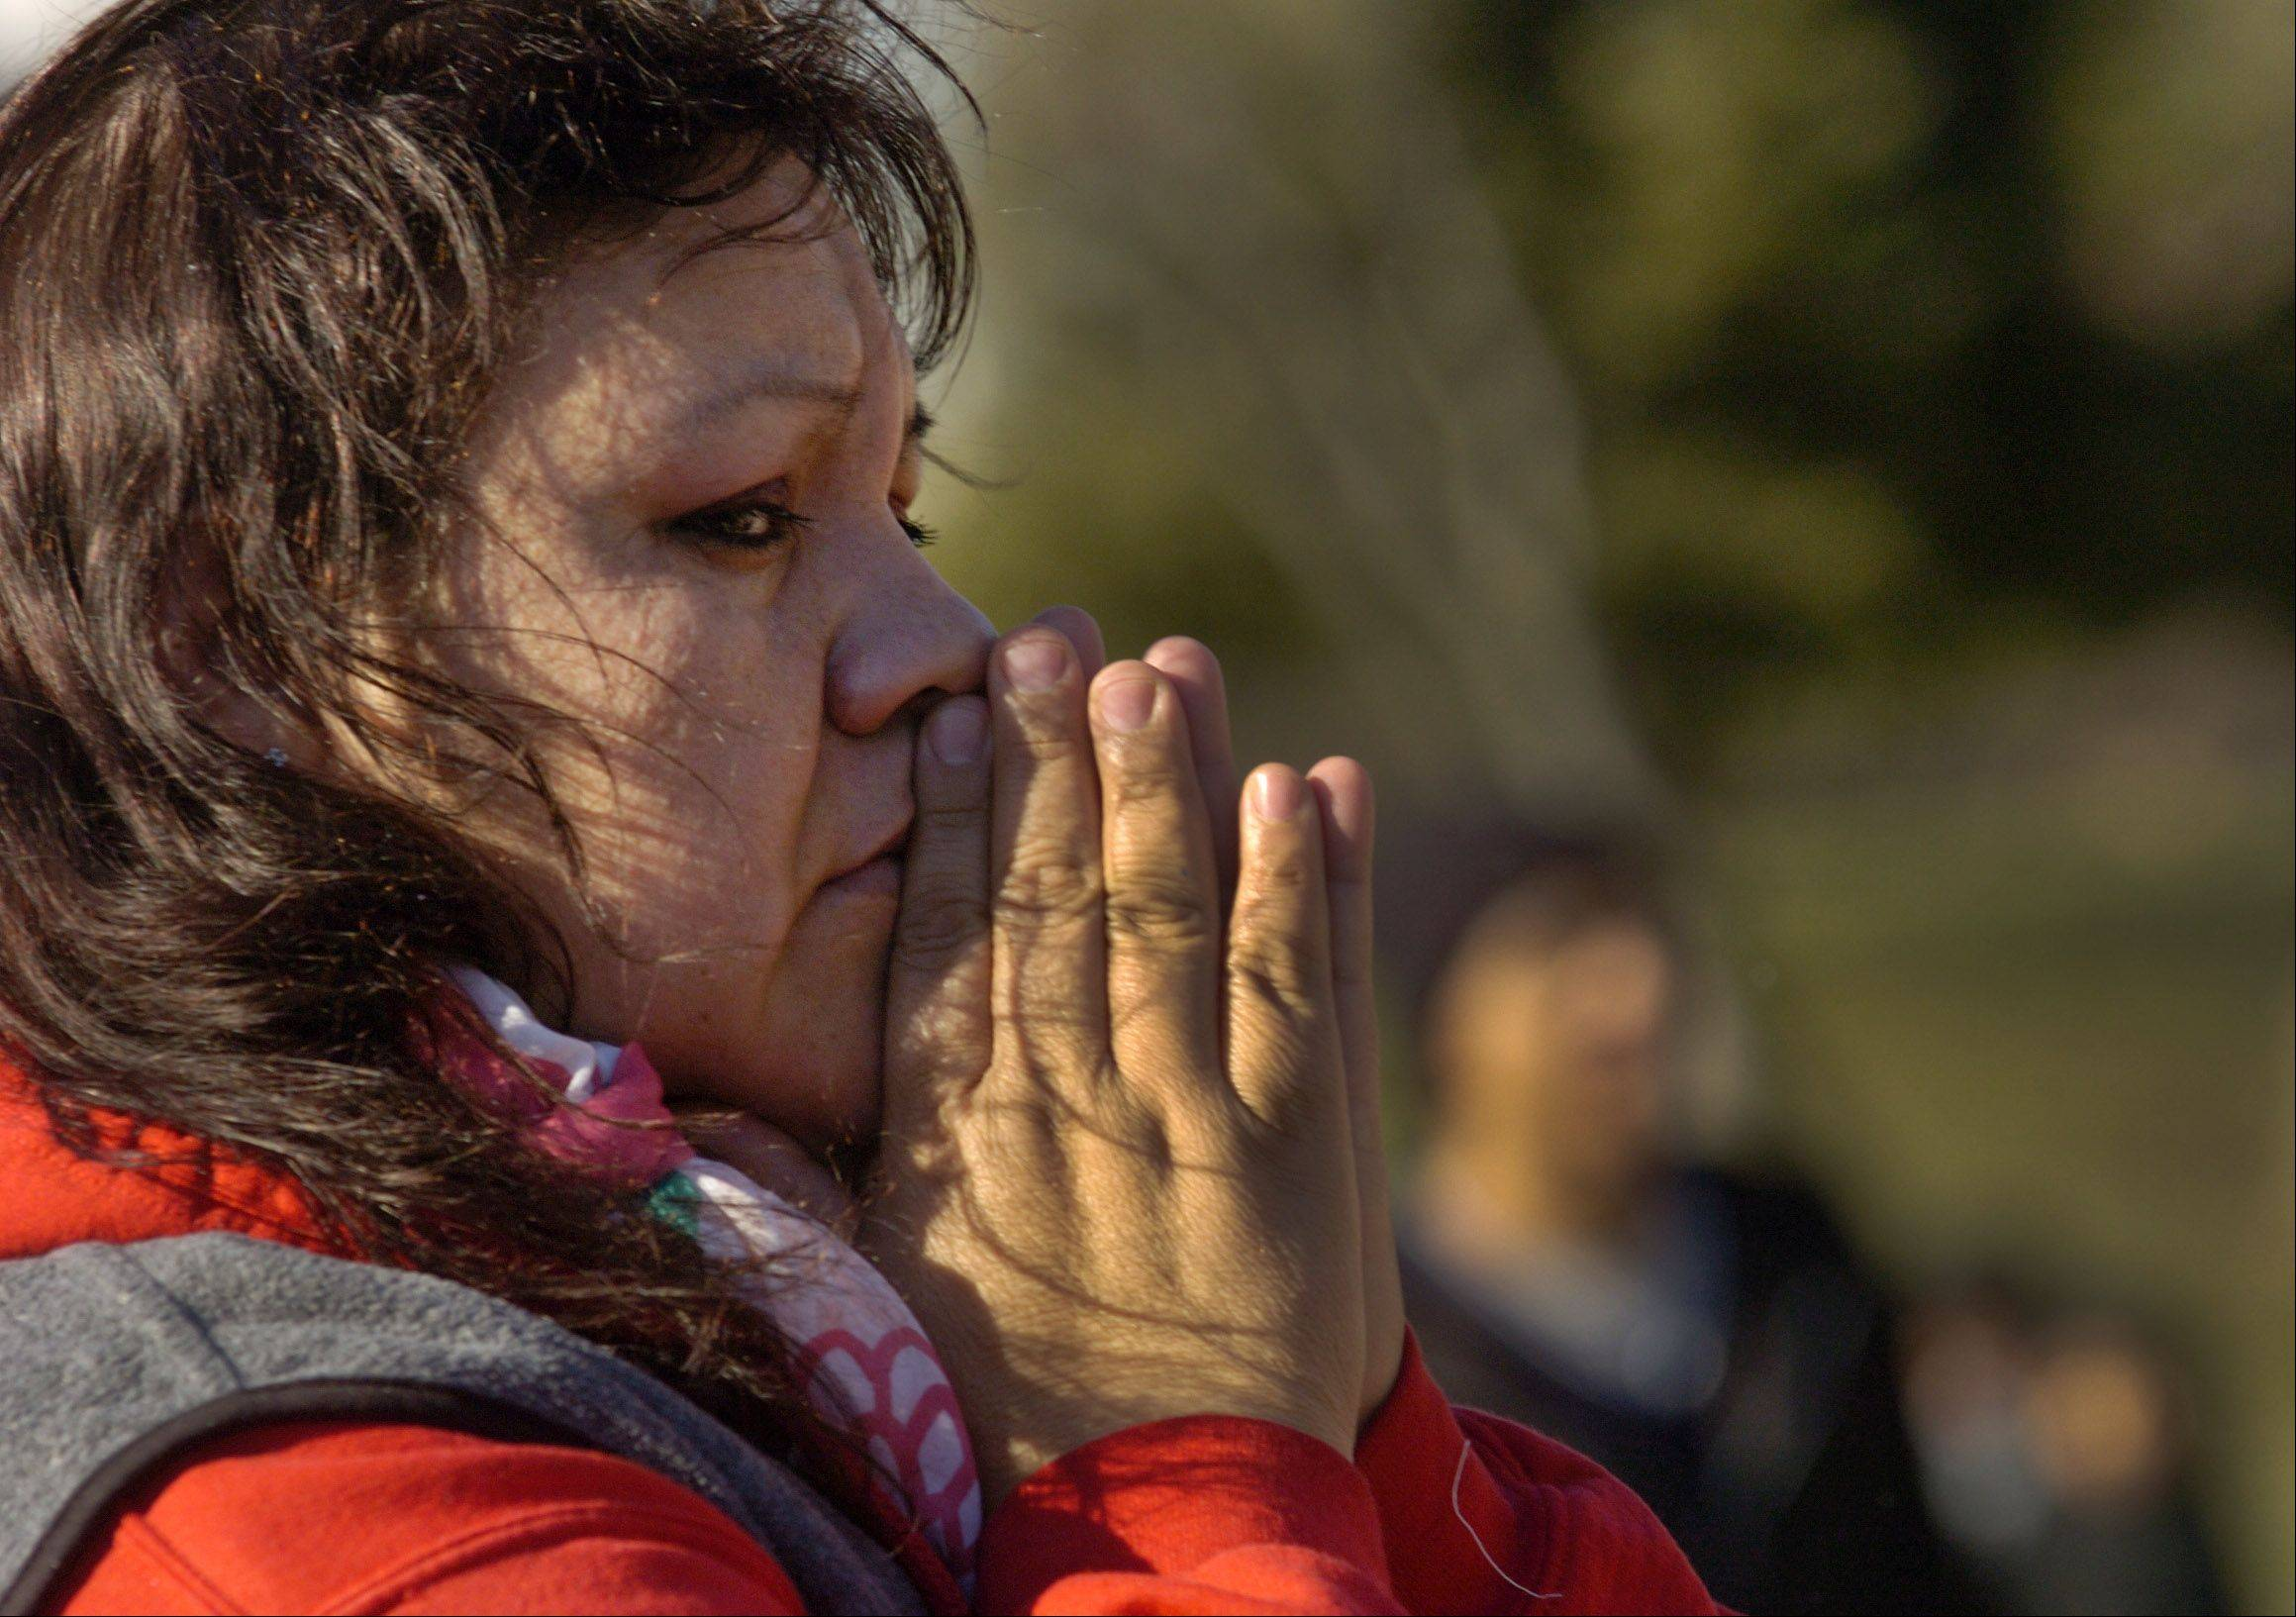 A pilgrim prays at Our Lady of Guadalupe shrine in Des Plaines.